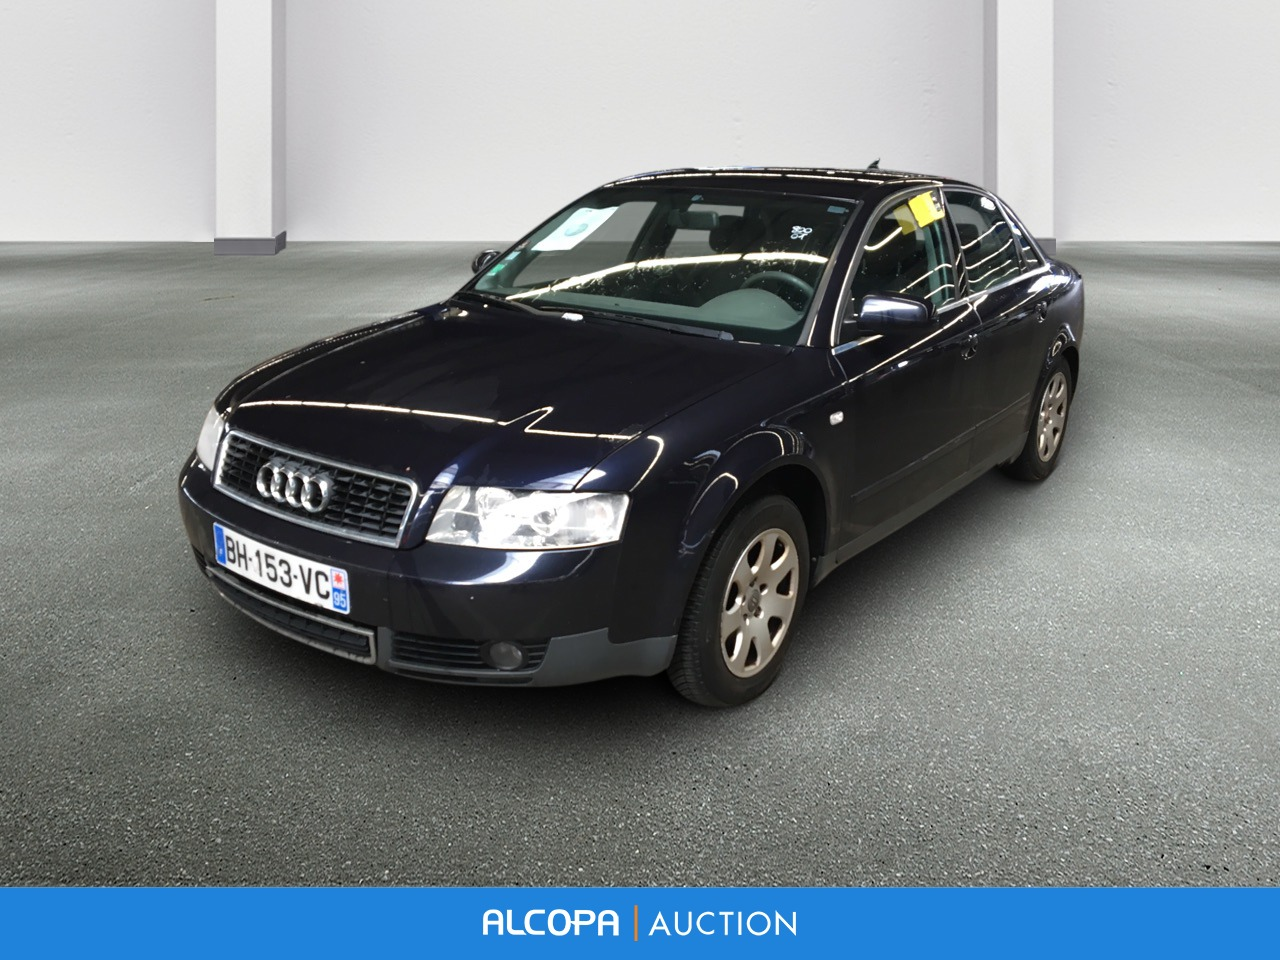 audi a4 a4 1 9 tdi 130 r f rence beauvais alcopa auction. Black Bedroom Furniture Sets. Home Design Ideas